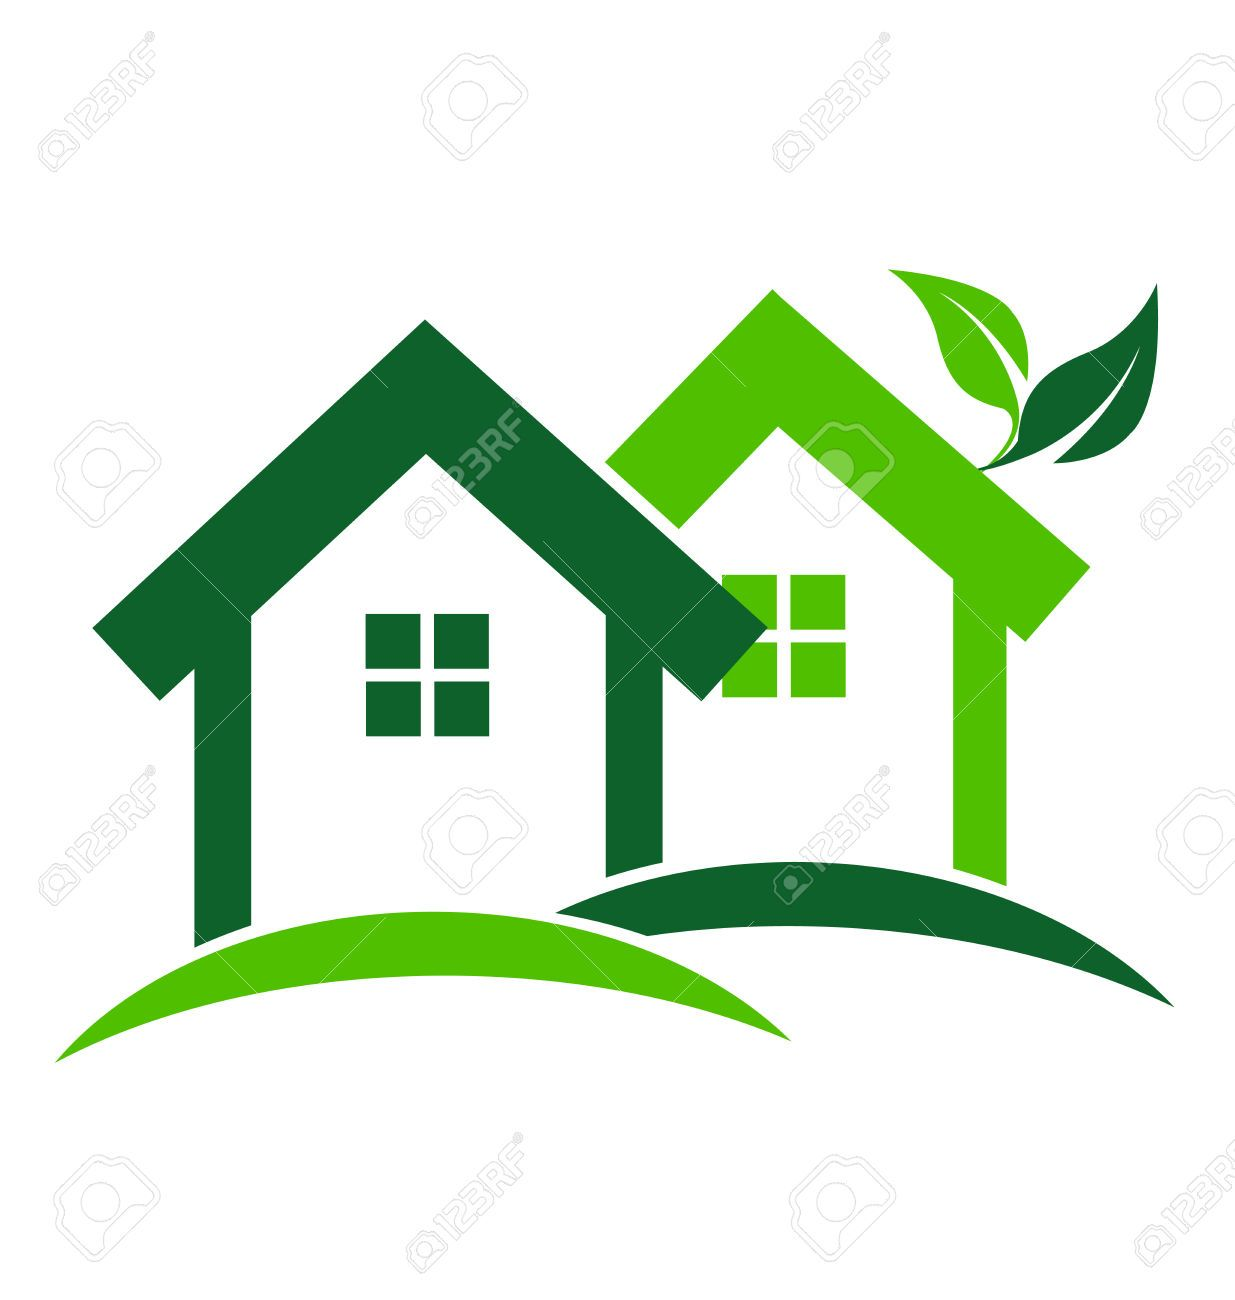 hight resolution of green houses real estate business card design vector icon royalty free cliparts vectors and stock illustration image 35628987